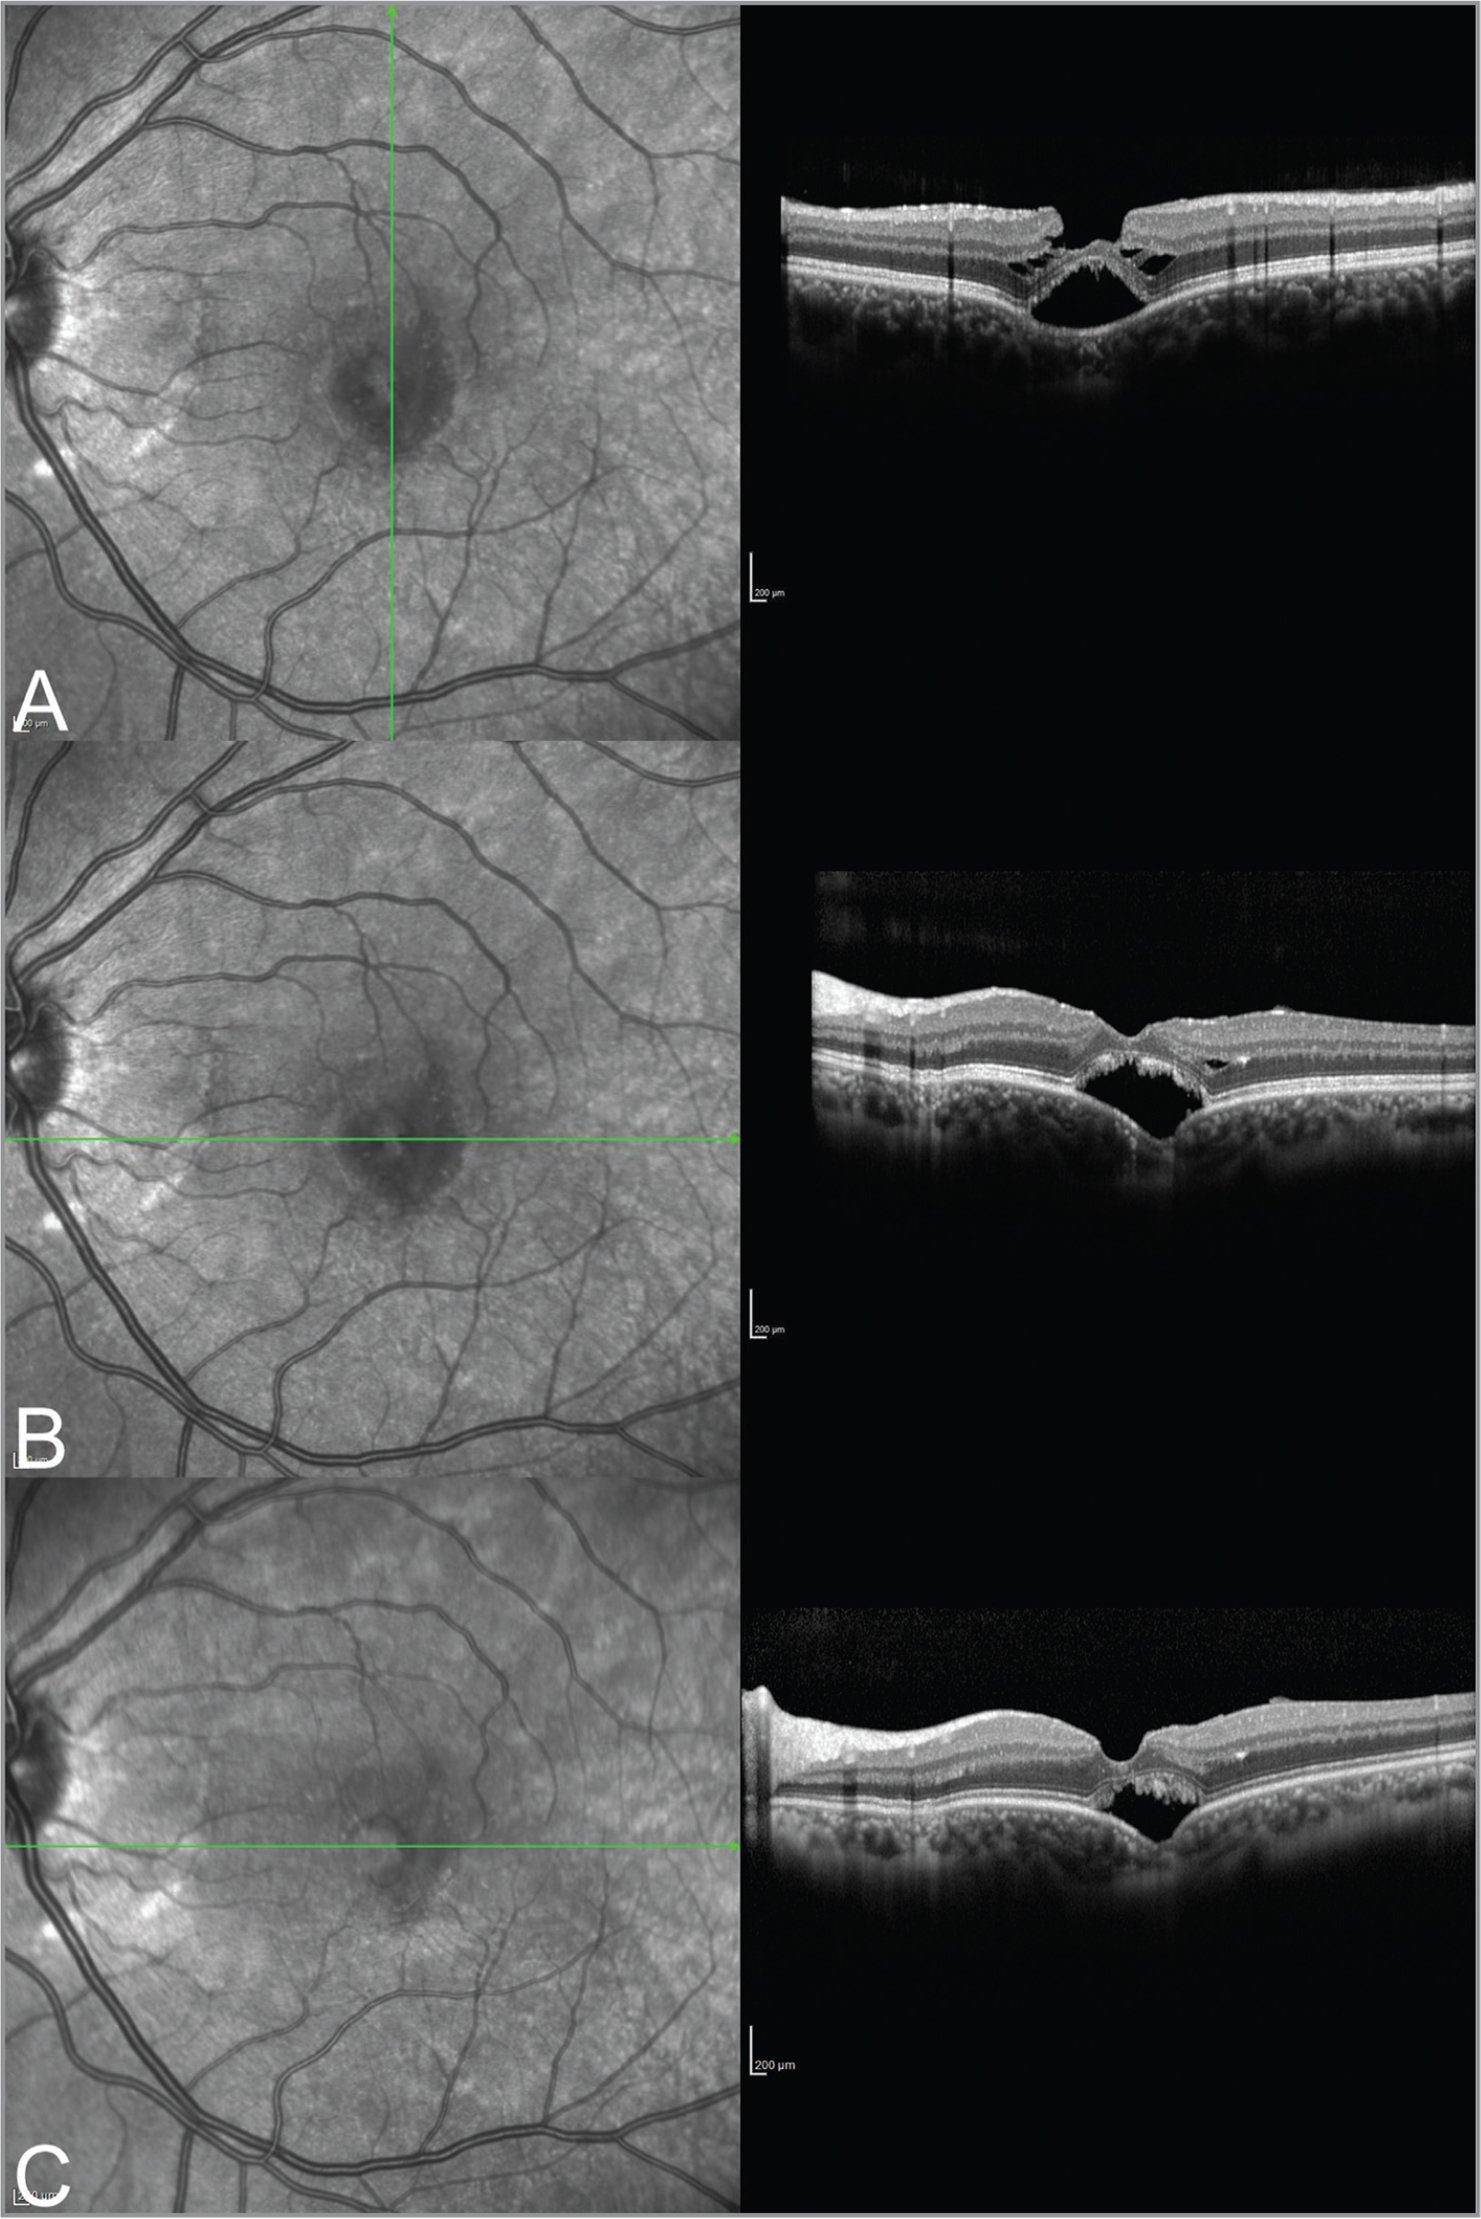 Horizontal and vertical enhanced depth imaging optical coherence tomography (EDI OCT) images of the left eye (A, B) 1 month post-trauma shows a nonconforming central focal choroidal excavation (FCE) with an overlying lamellar macular hole and schisis within Henle's fiber layer. Although choroidal thickness within the lesion is diminished, the choroidal structure does not appear to manifest cicatricial changes. The retinal pigment epithelium / Bruch's membrane complex is attenuated within the area of FCE. Three months after blunt trauma, EDI OCT shows reduced subretinal fluid and resolution of the schisis (C). The green arrows indicate the location and direction of the EDI OCT B-scans.